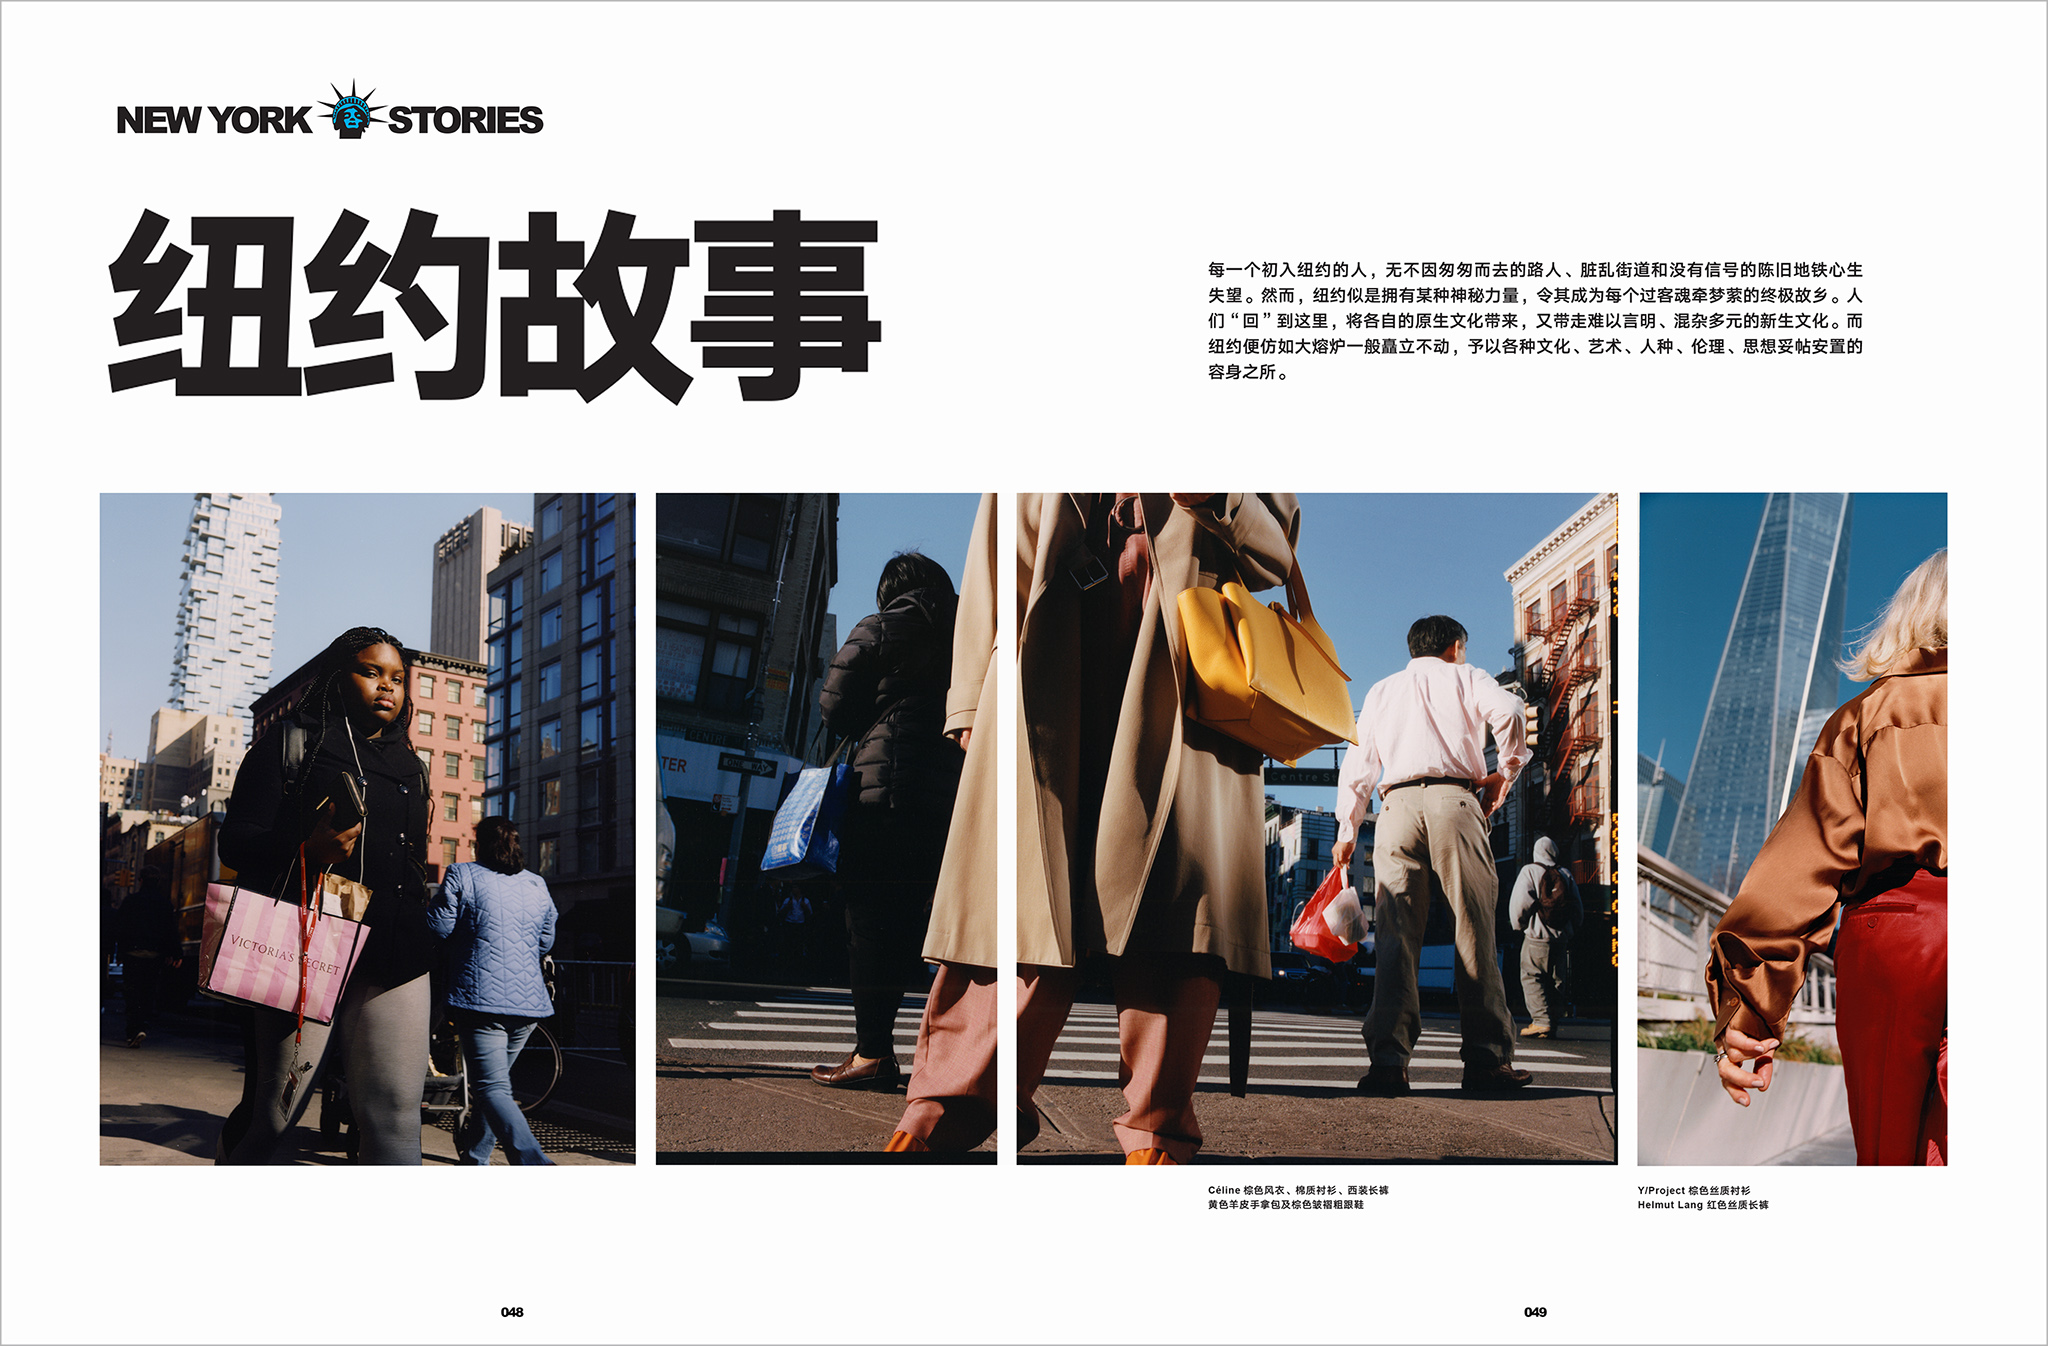 Editorial for the chaos-themed issue of *Modern Weekly China*, shot around the busy Canal Street and Wall Street in Manhattan, New York. *{Styling by Sasha Kelly. Casting by Midlands}* - © Maciek Pożoga